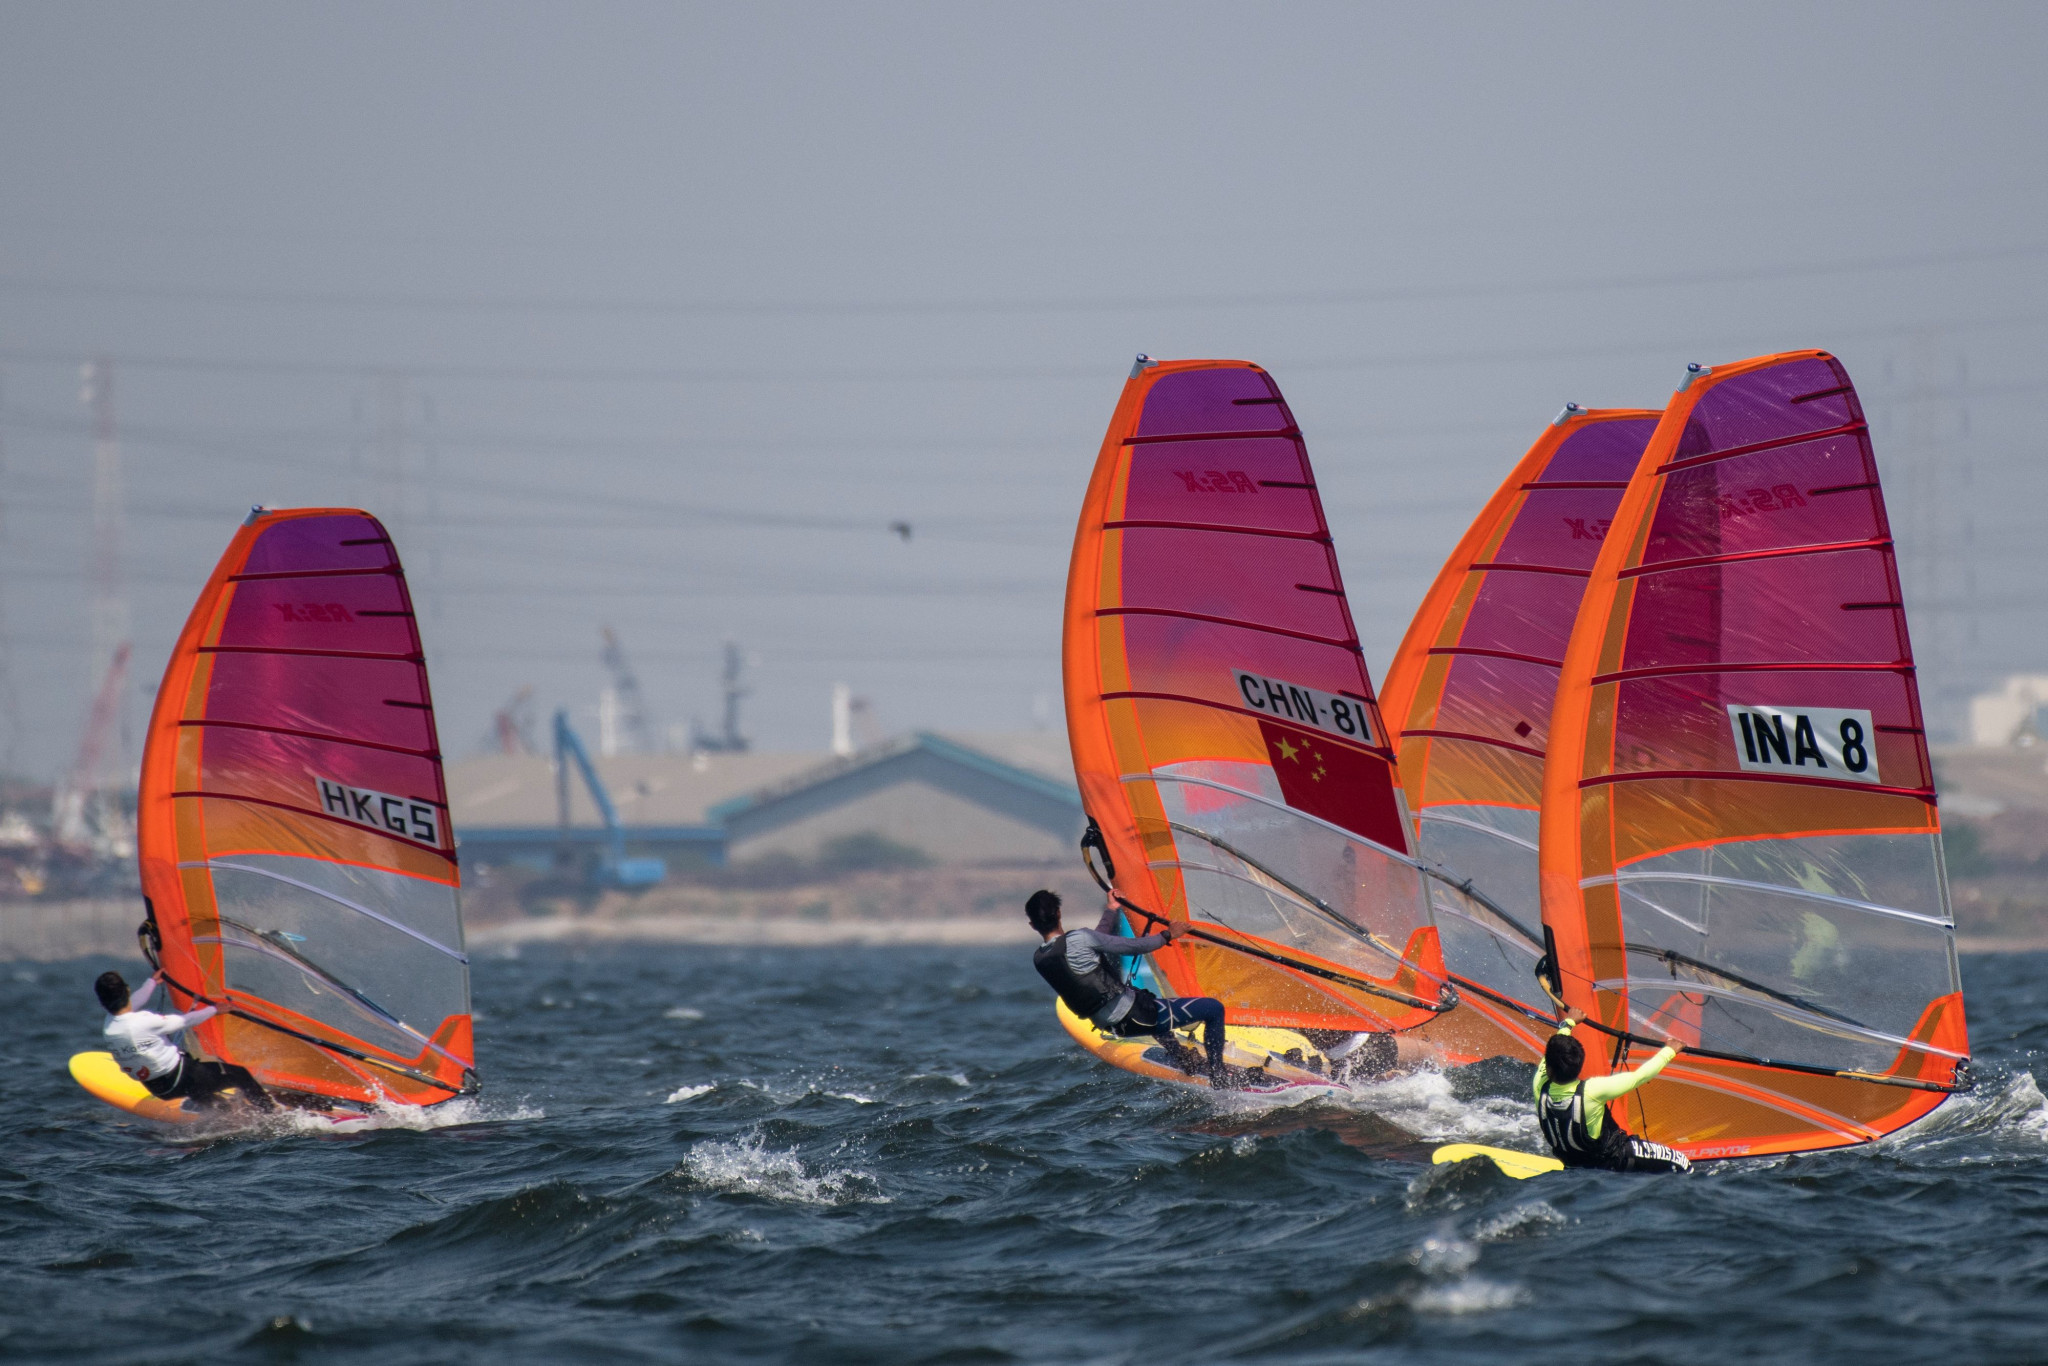 The RS:X could be replaced as the windsurfing equipment for Paris 2024 ©Getty Images